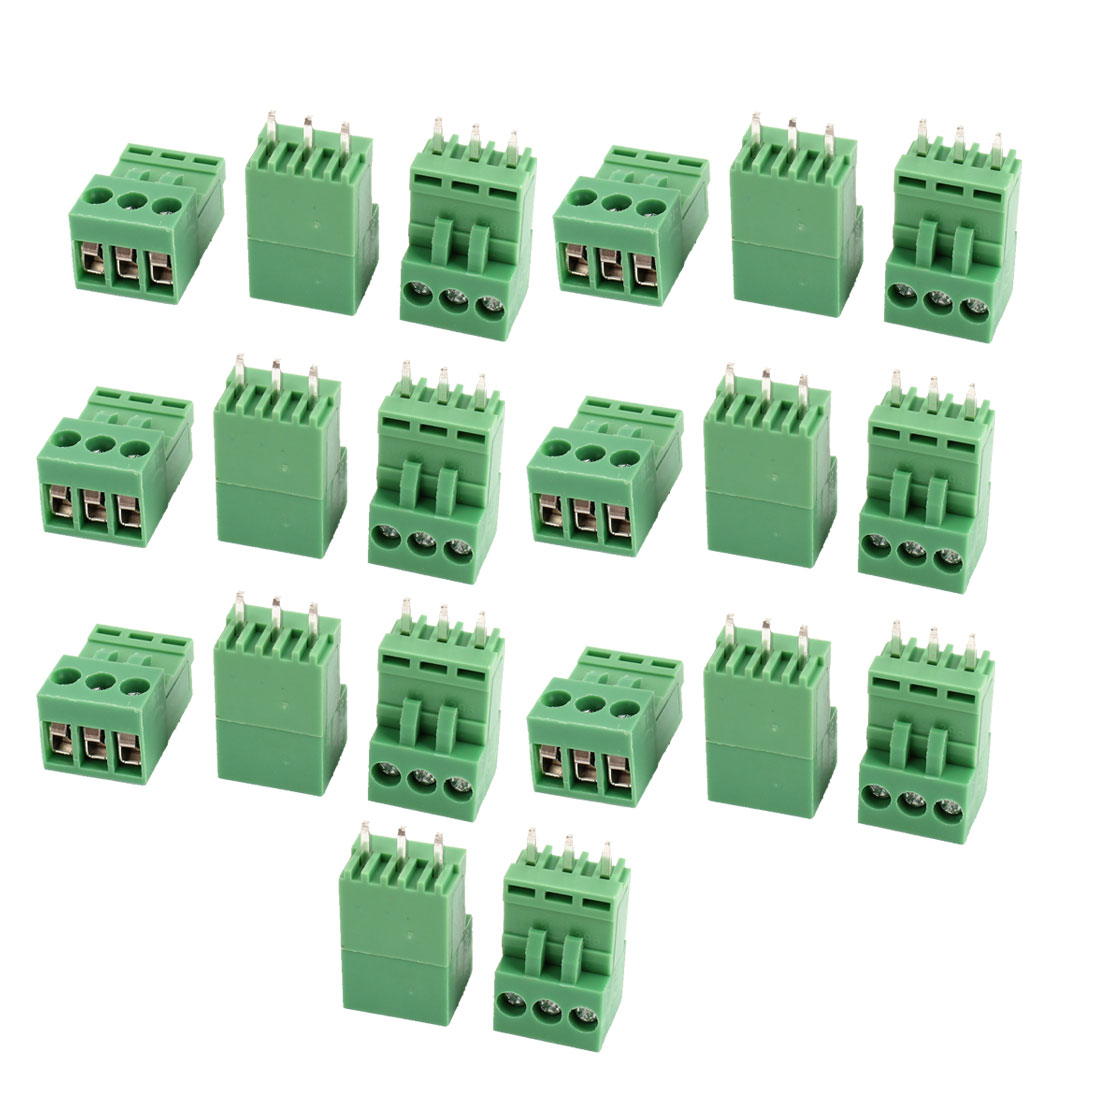 20 Pcs Green AC 300V 10A 3P Poles PCB Screw Terminal Block Connector 3.96mm Pitch